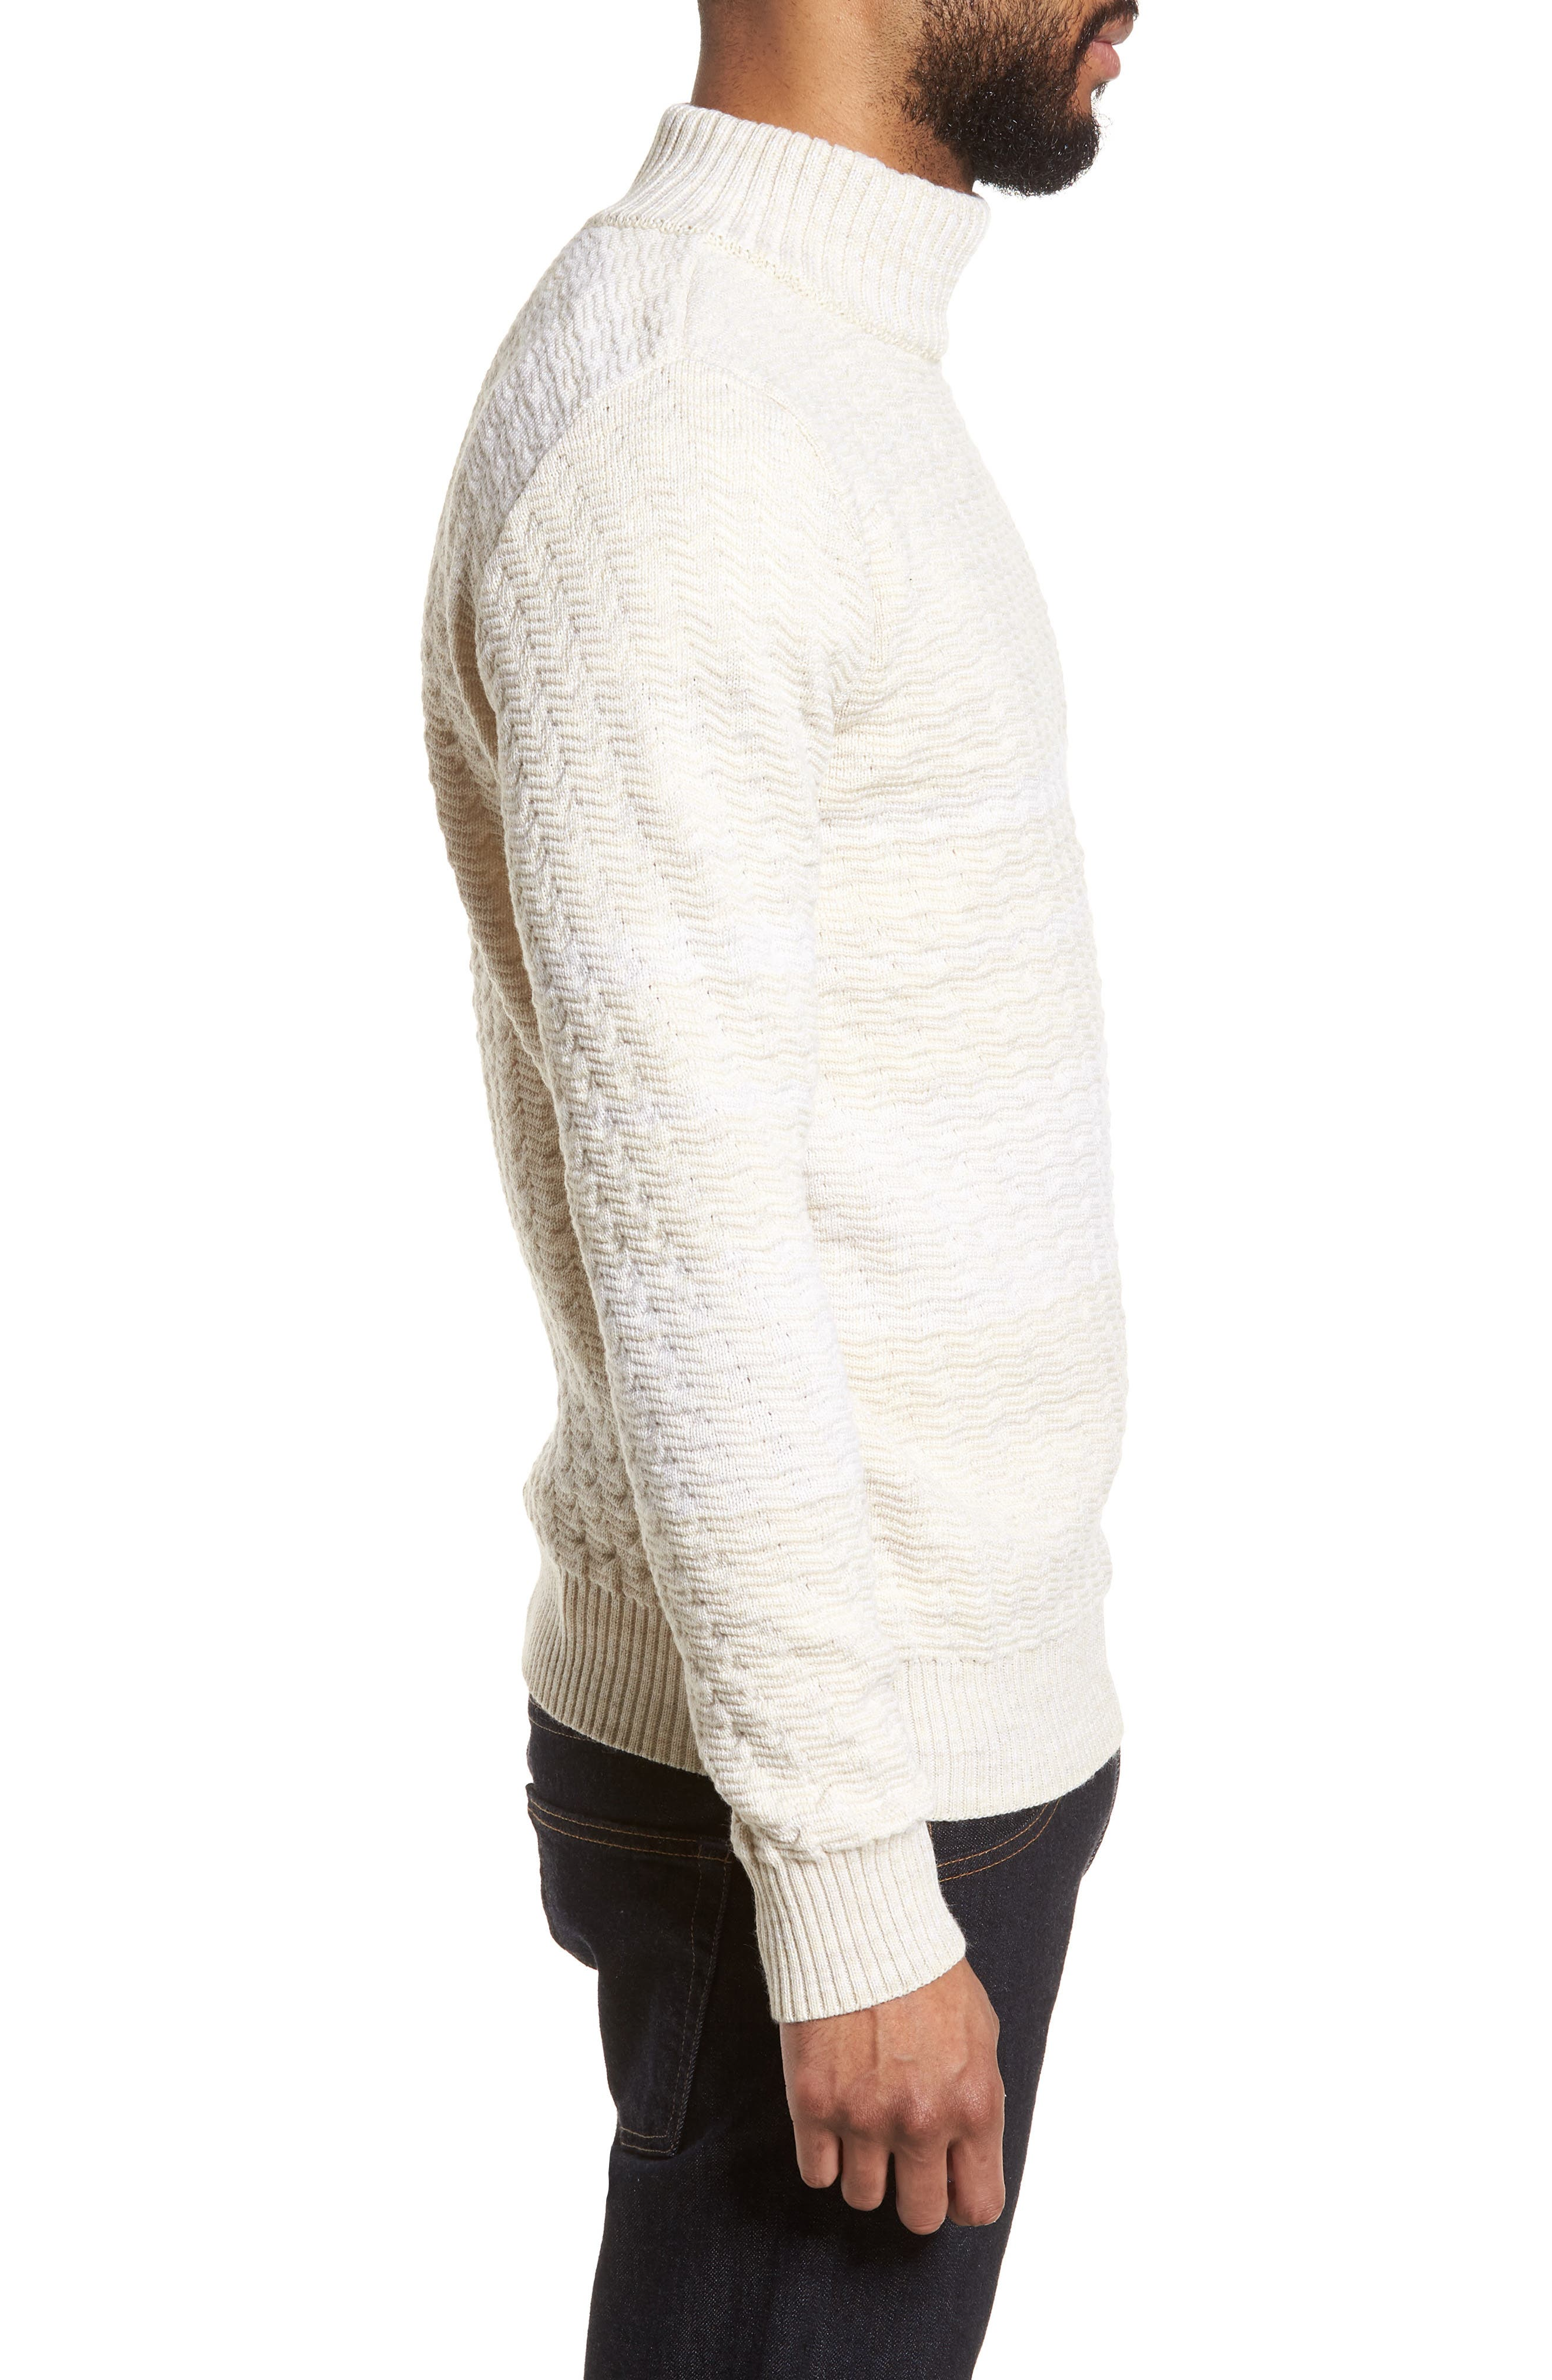 Evident Wool Turtleneck Sweater,                             Alternate thumbnail 3, color,                             Raw